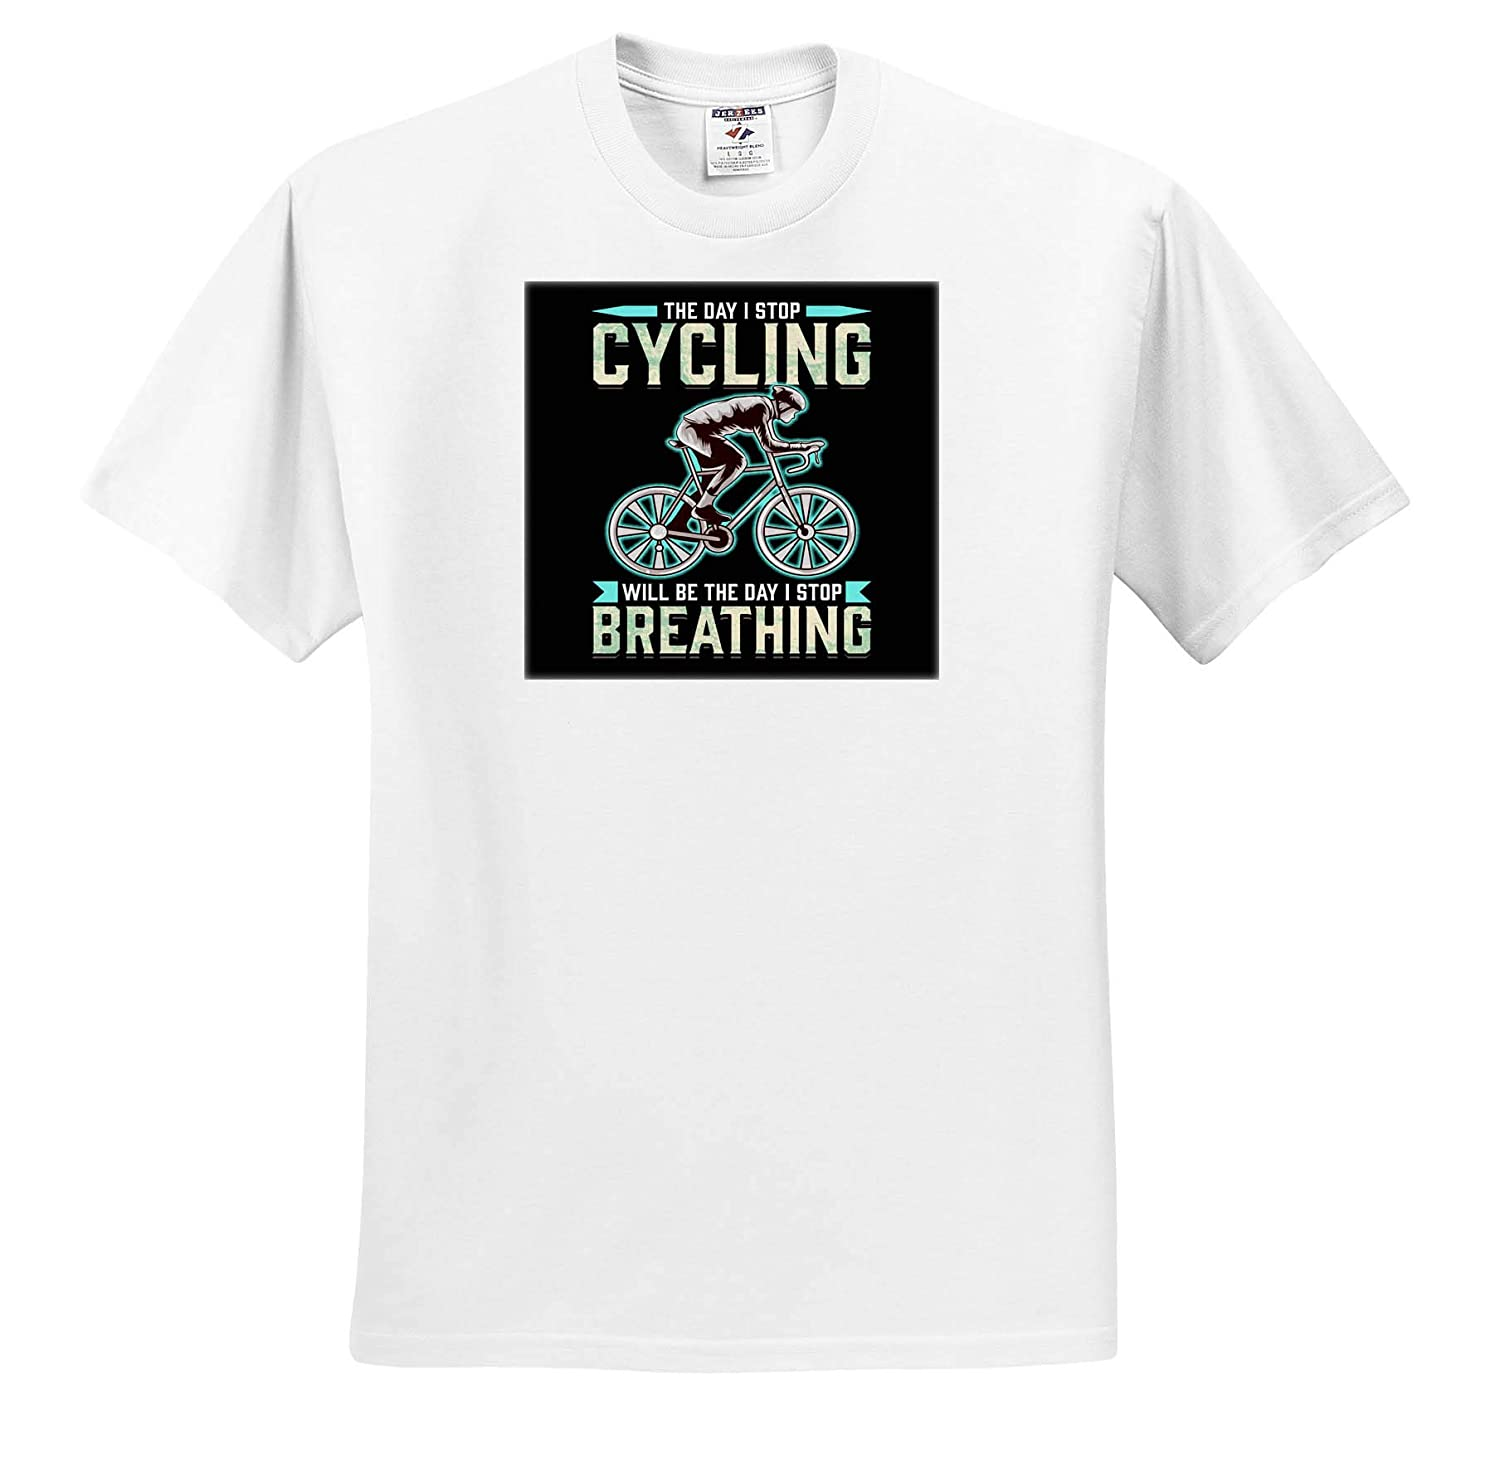 The Day i Stop Cycling Will Be The Day I Stop Breathing Adult T-Shirt XL ts/_314120 3dRose Sven Herkenrath Sport